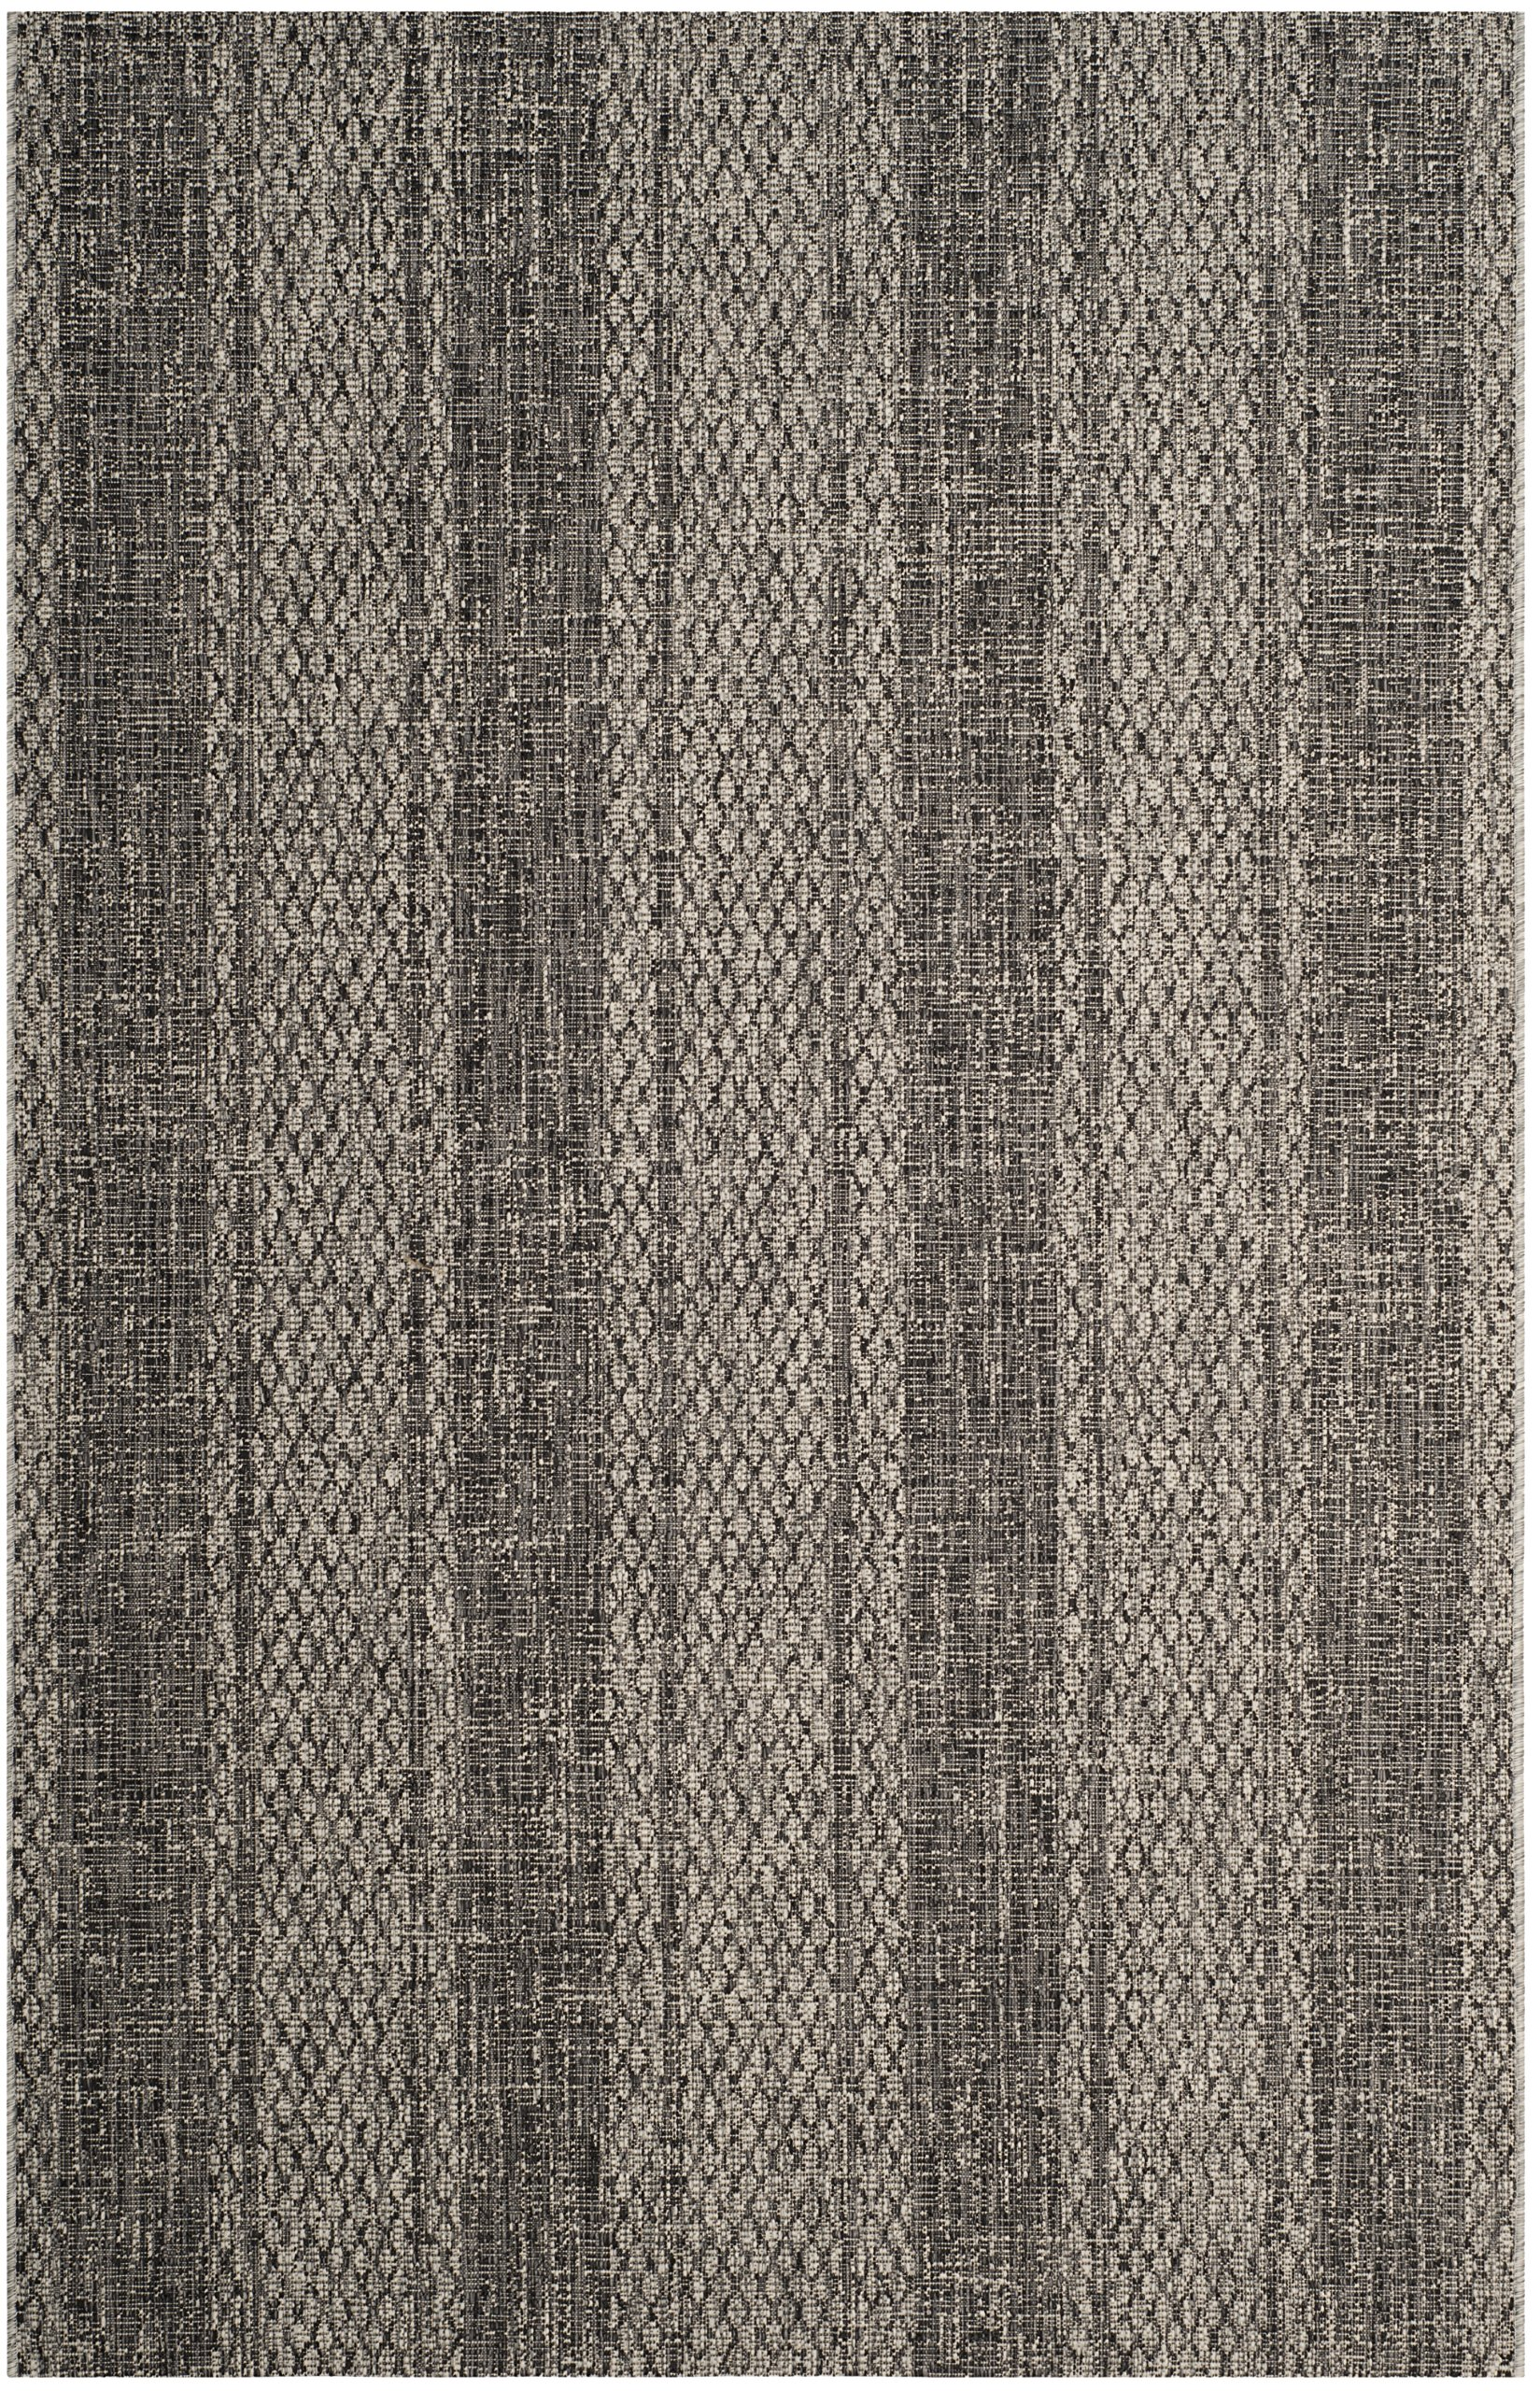 Safavieh Courtyard Collection CY8736-37612 Light Grey and Black Indoor Outdoor Area Rug (6'7'' x 9'6'')